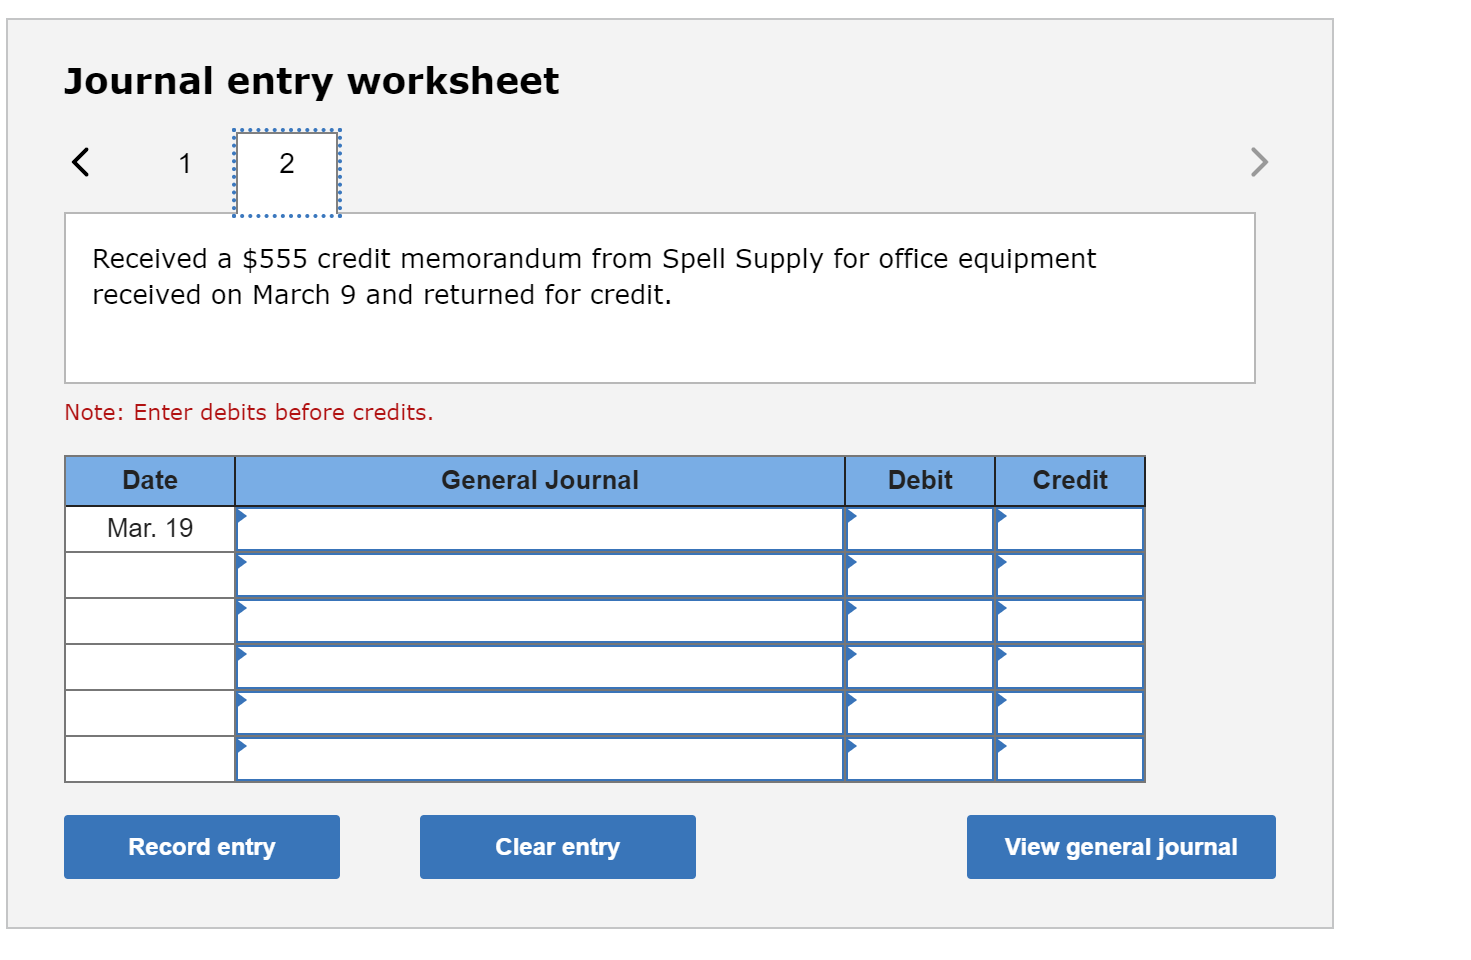 Journal entry worksheet < 1 Received a $555 credit memorandum from Spell Supply for office equipment received on March 9 and